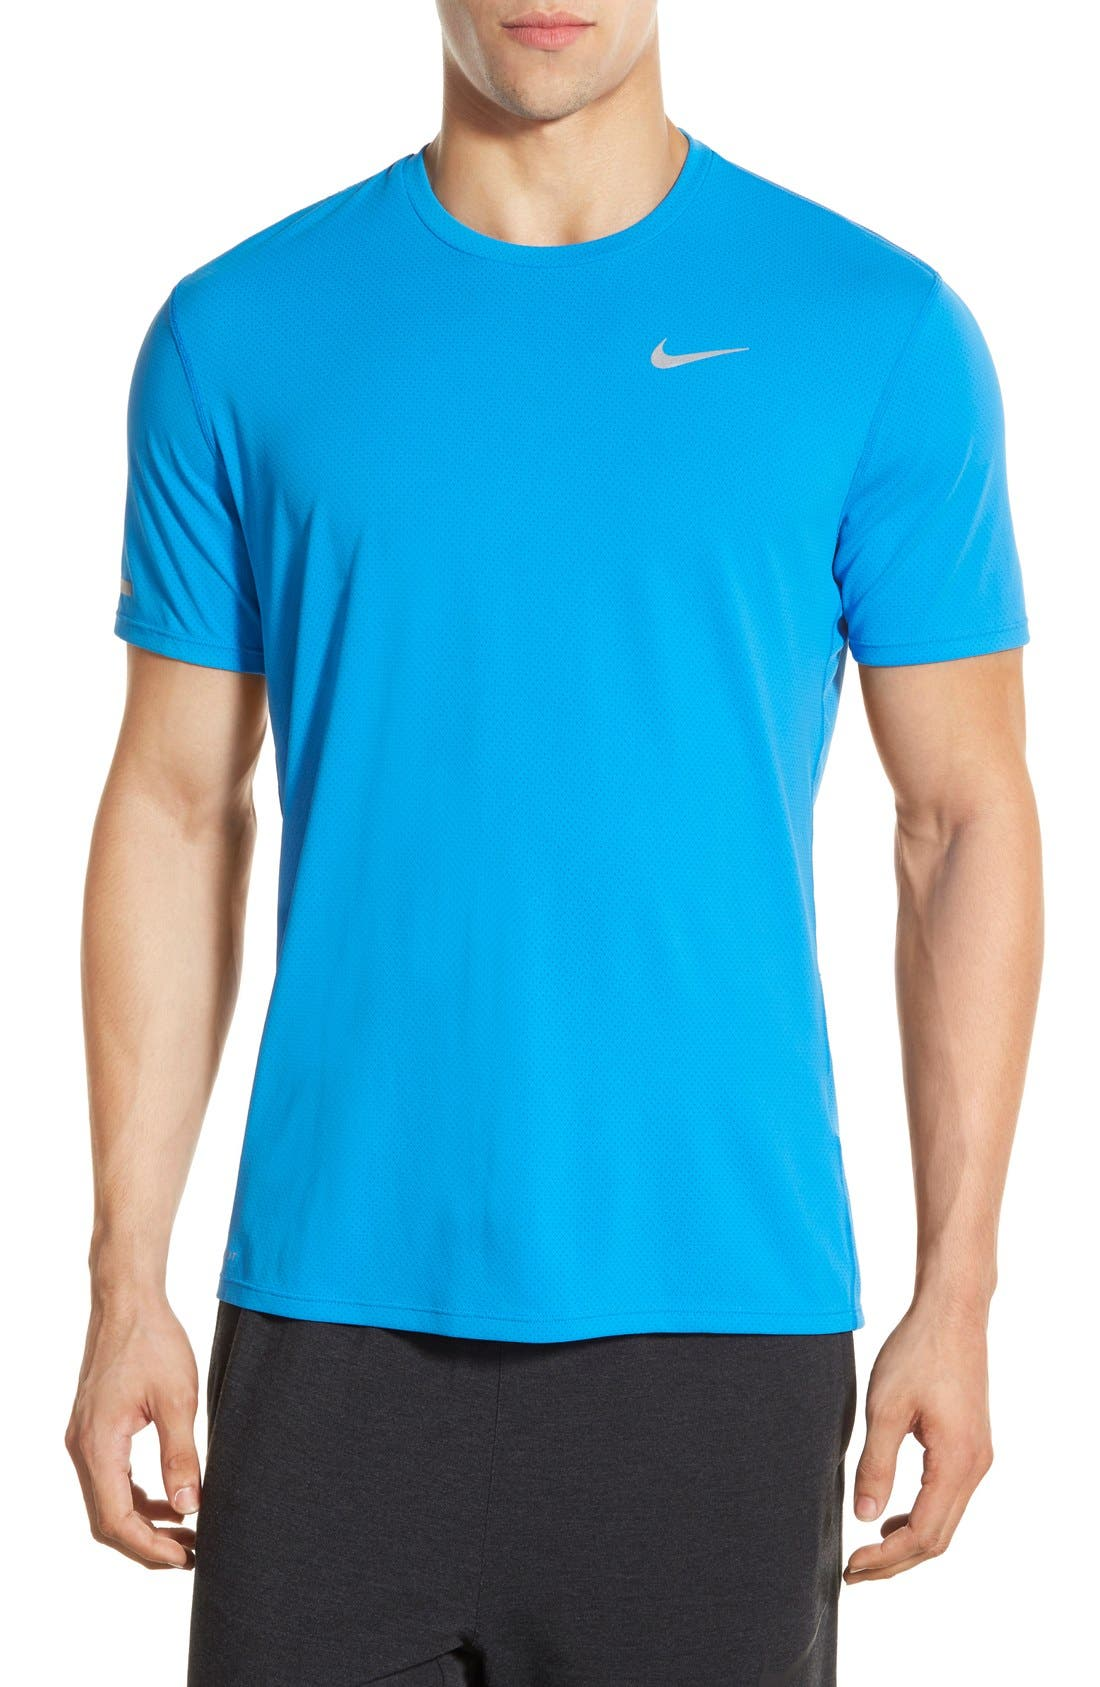 'Contour' Mesh Dri-FIT Running T-Shirt,                         Main,                         color, Photo Blue/ Reflective Silver